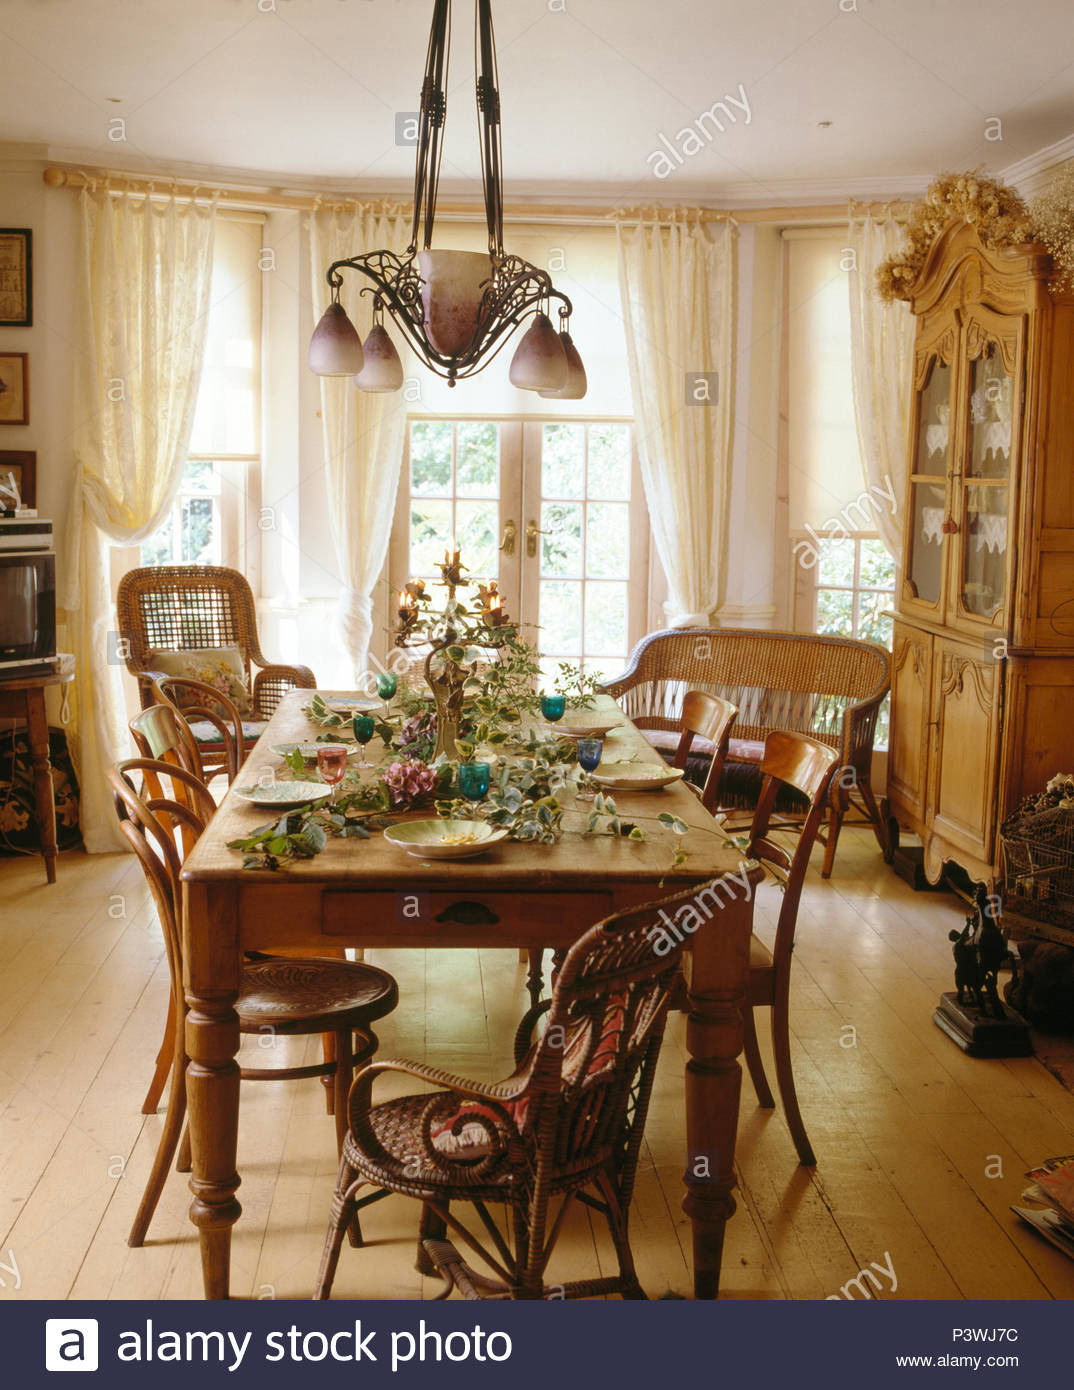 art nouveau style light above old pine table and vintage chairs in country dining room with wooden floor and white drapes P3WJ7C